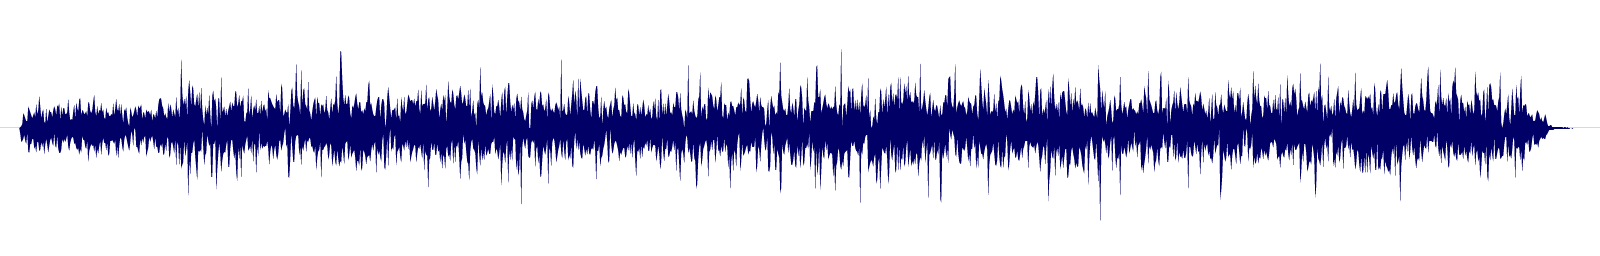 waveform of track #90049